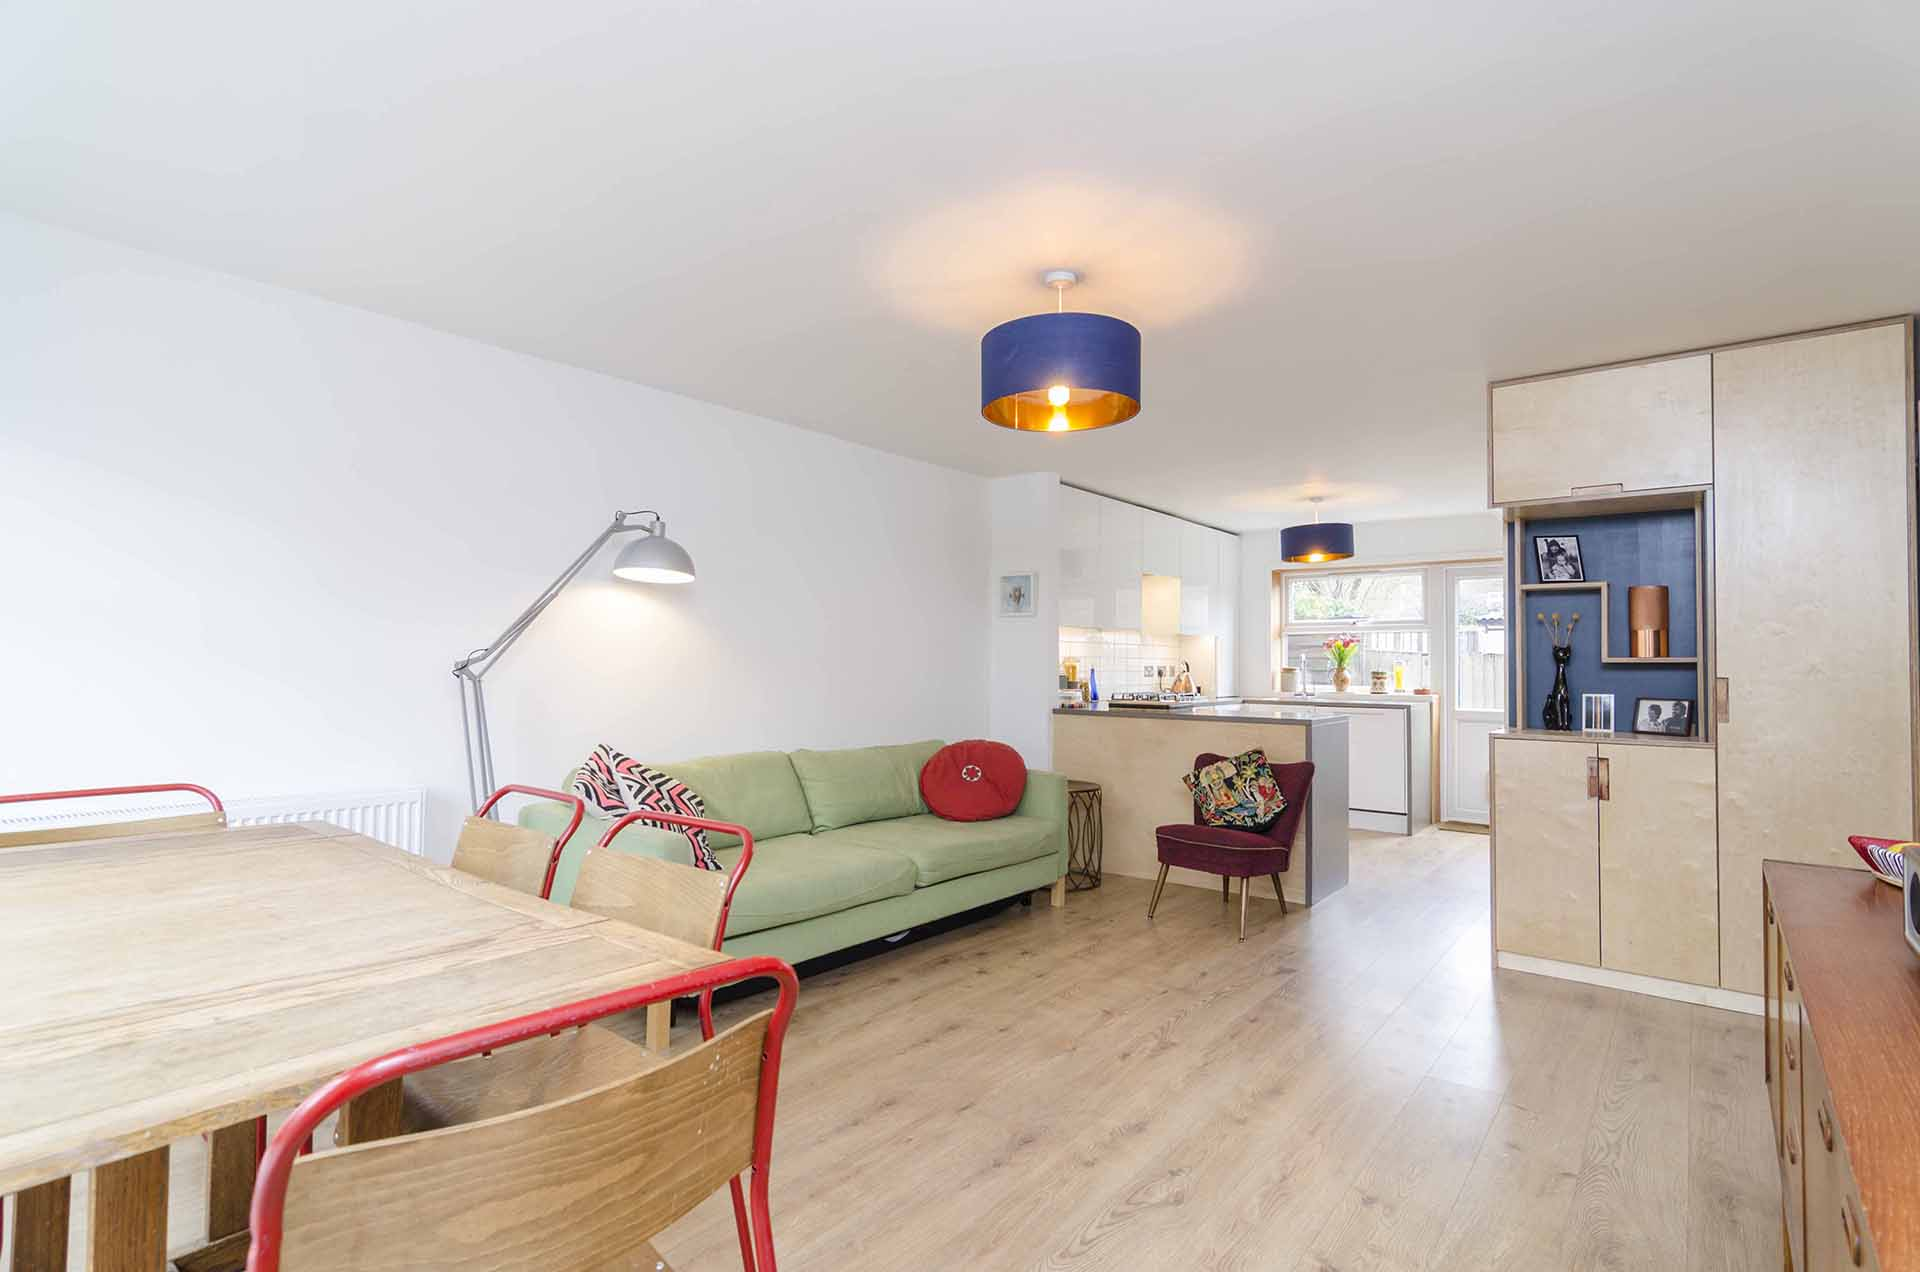 The House Photographer - Property Photography - E17 1